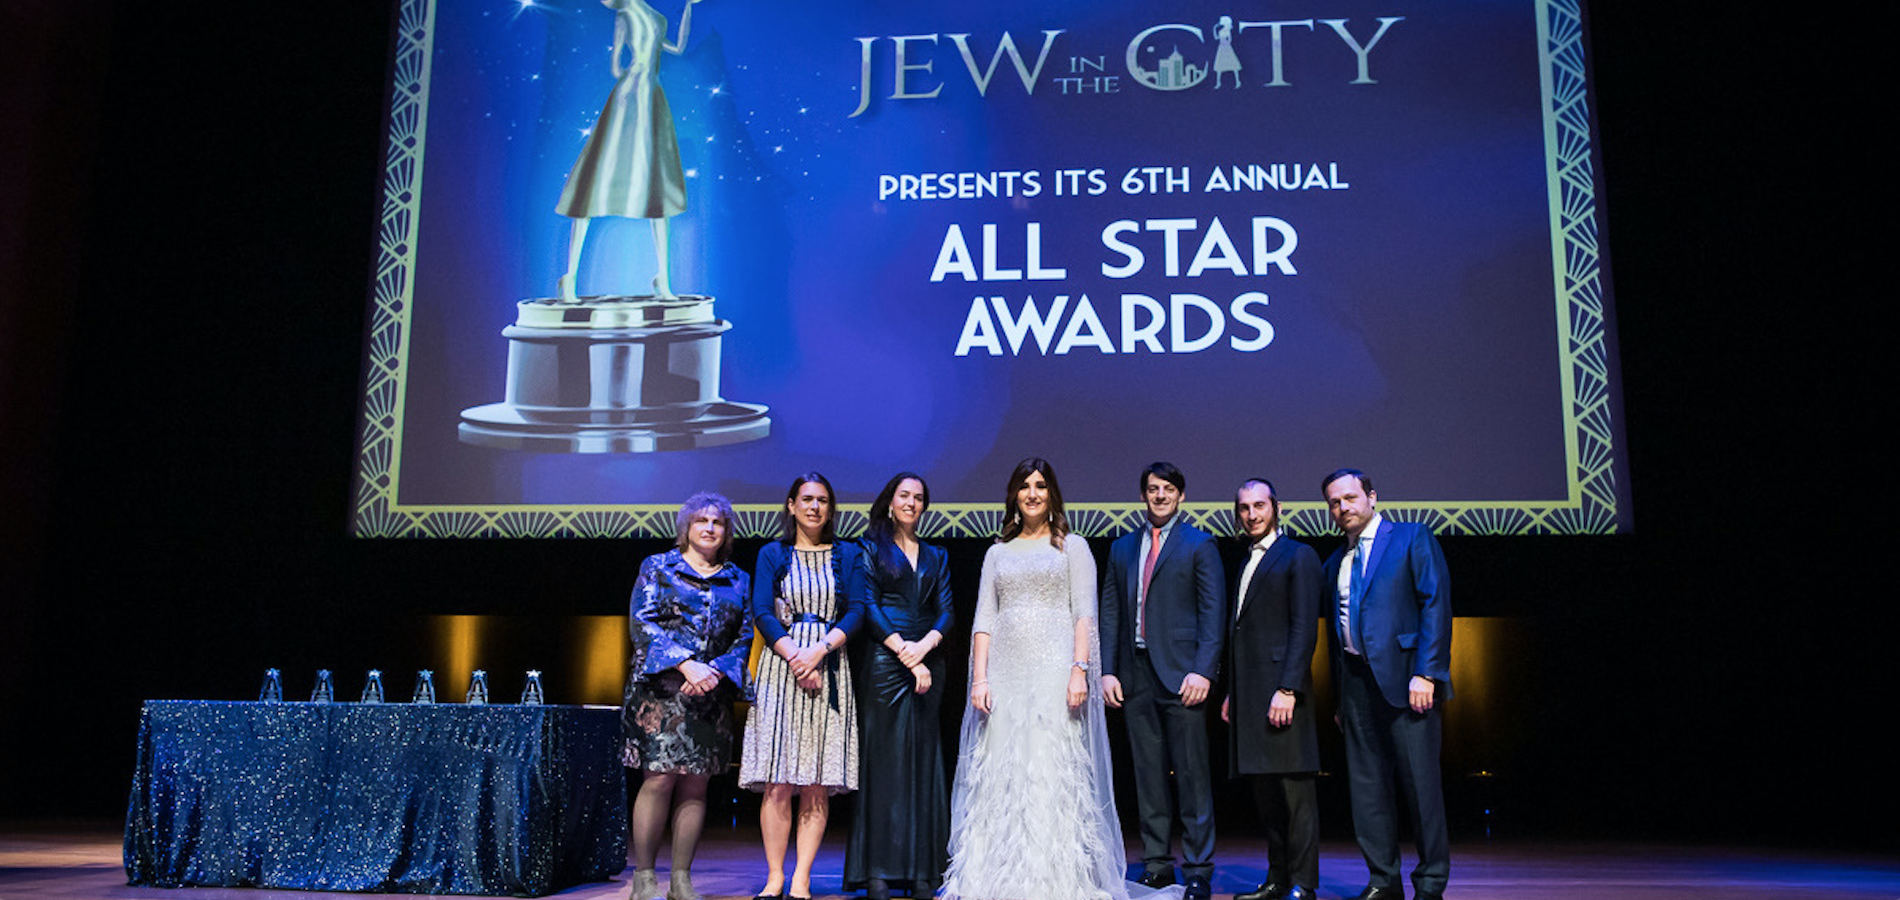 My Speech For The Jew in the City 6th Annual All  Star Awards